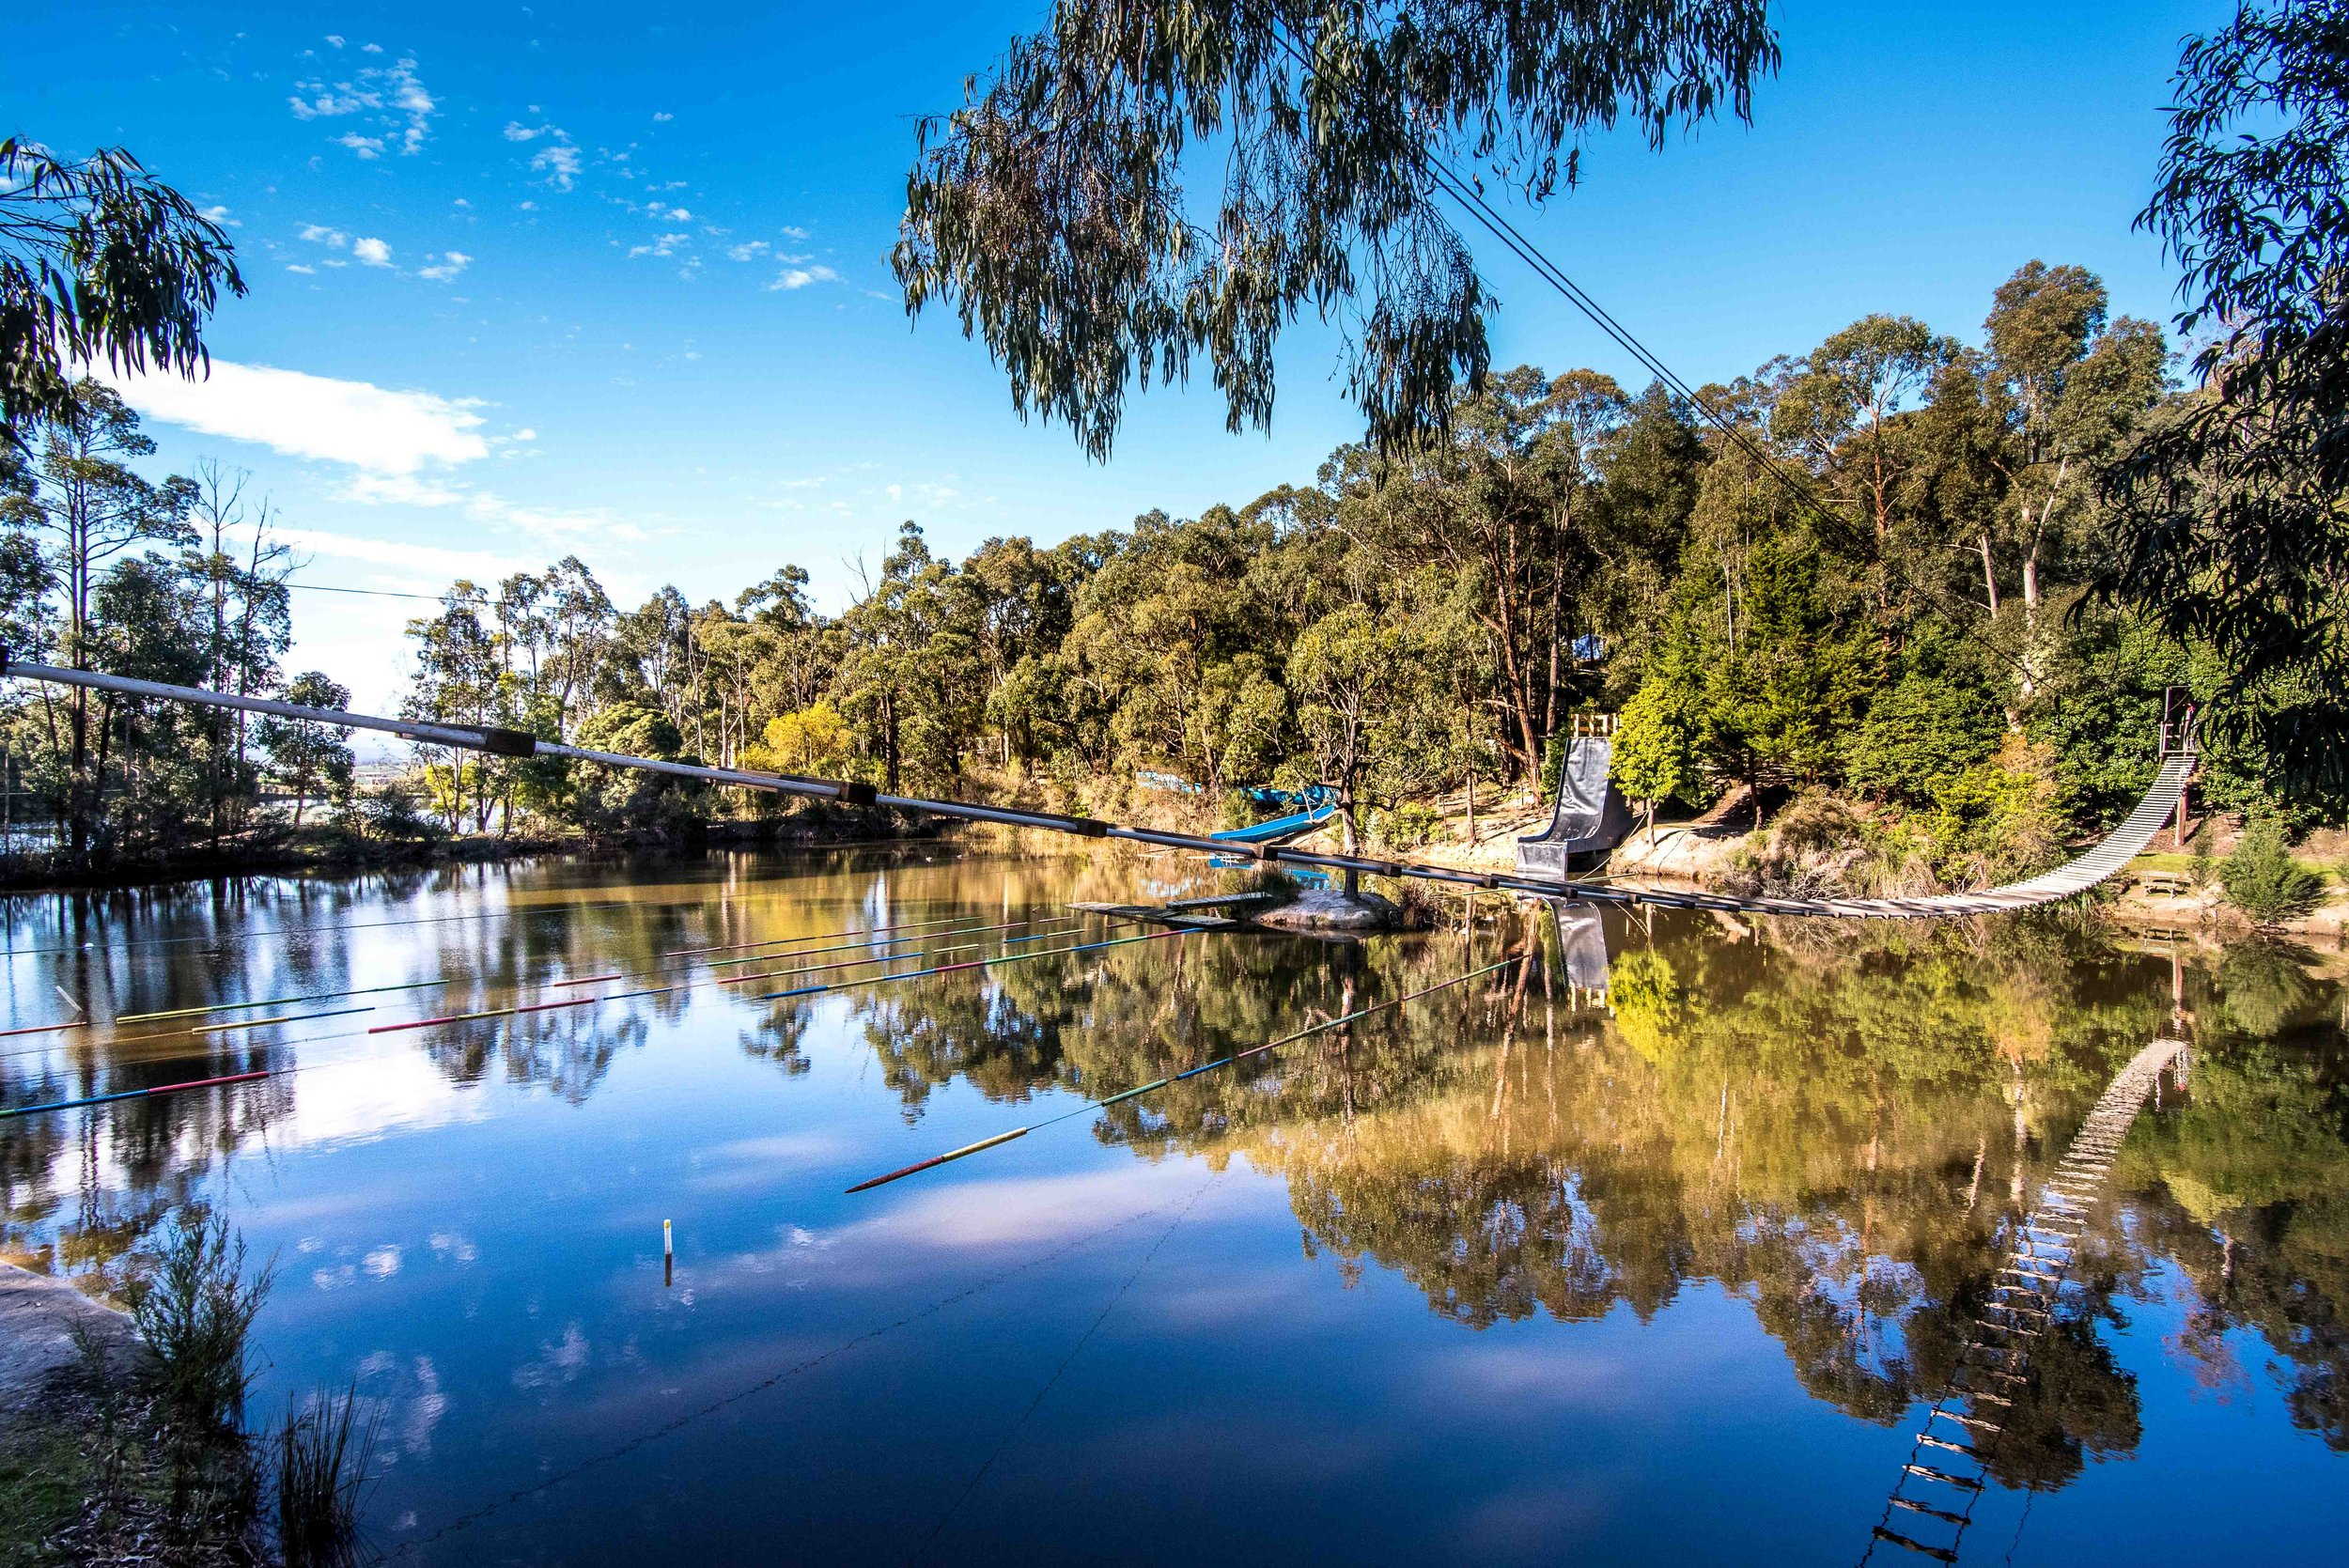 Where  We have partnered with the multi-award winning outdoor Adventure Park,   The Summit.   Located in Trafalgar East, Victoria,  It is only 90 minutes from CBD Melbourne.